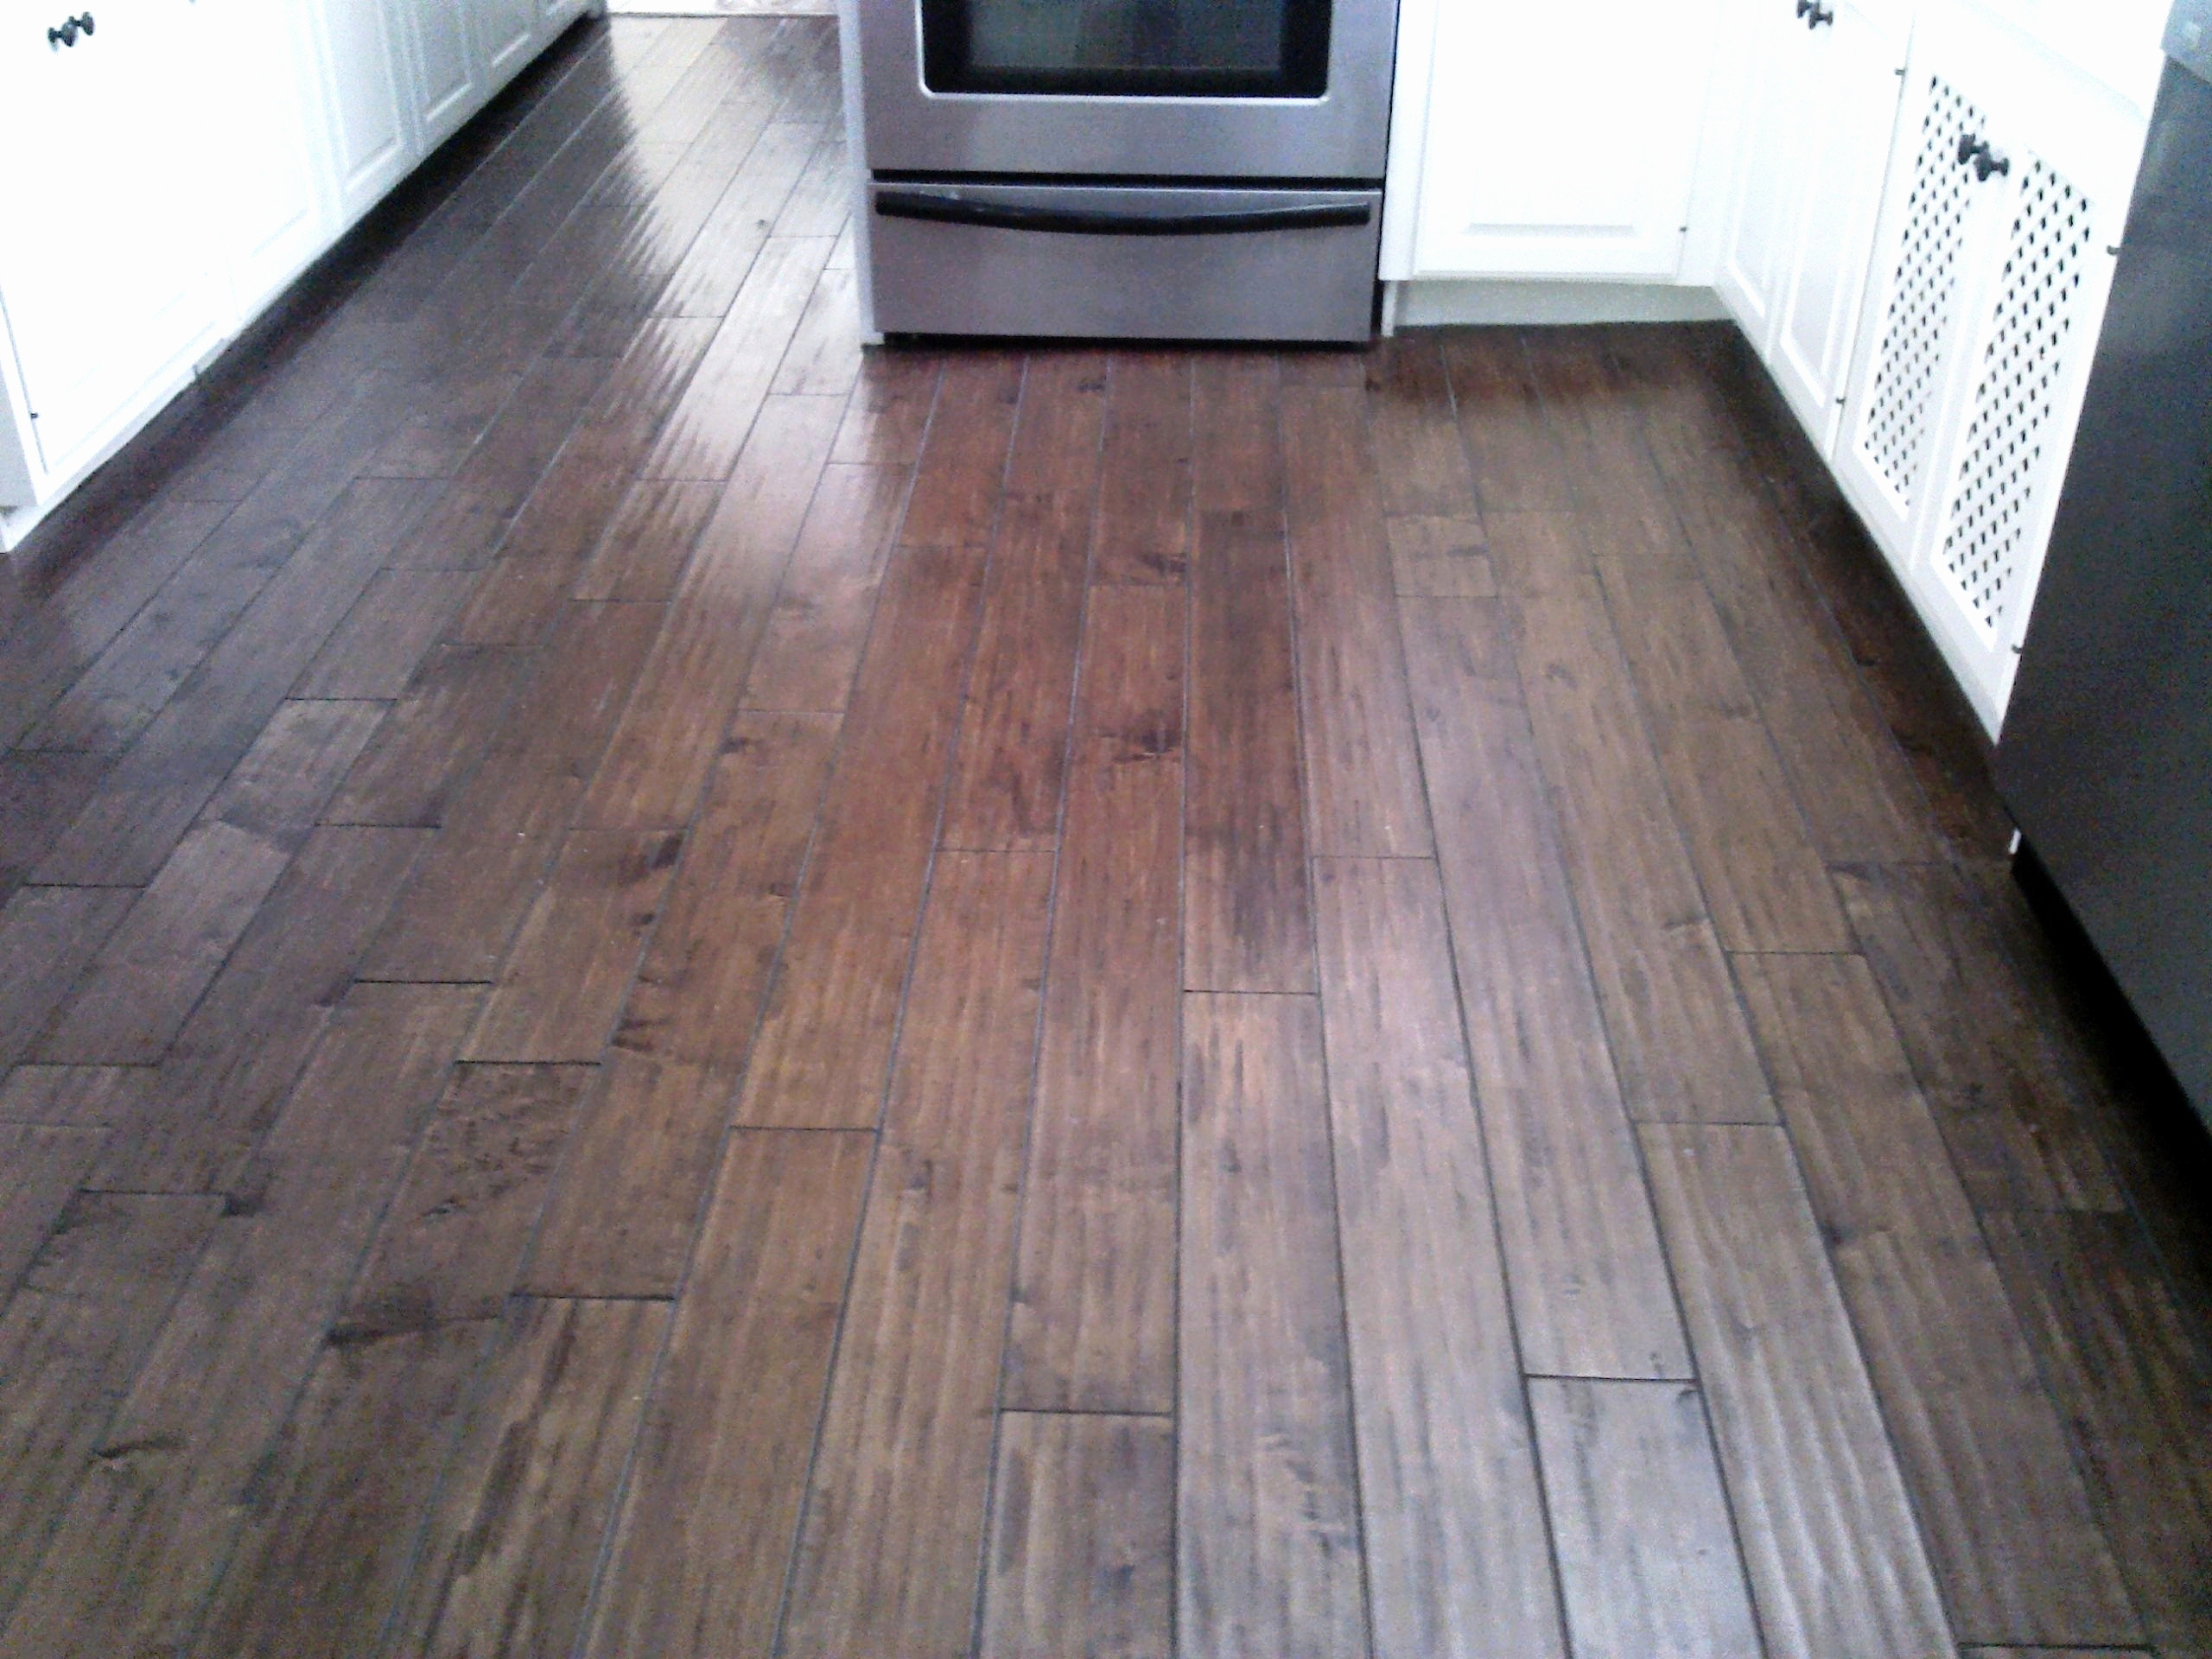 hardwood floor cost per square meter of ceramic wood tile installation cost elegant tile that looks pertaining to ceramic wood tile installation cost fresh 50 beautiful clearance hardwood flooring 50 s